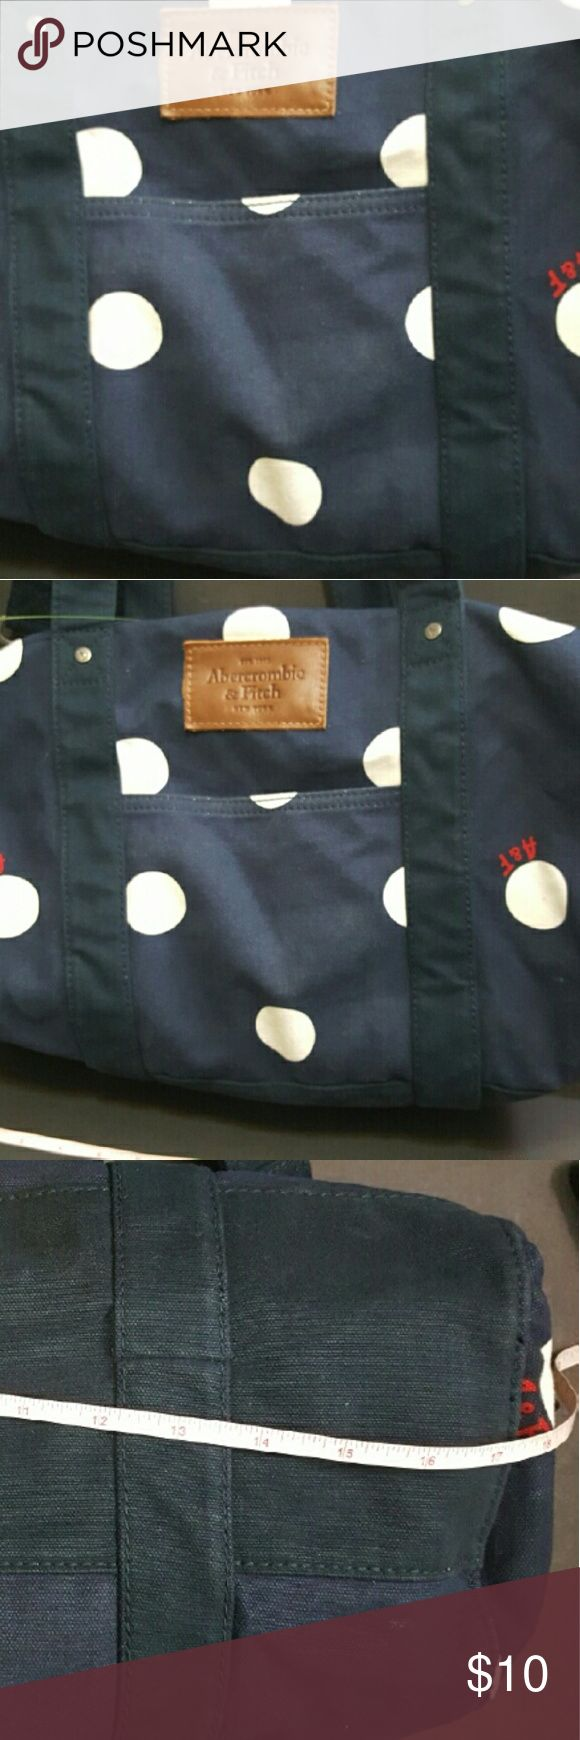 Abercrombie and Fitch Polka dot duffel bag Handles and shouder strap Used a few times some spotting here and there but overall good used condition  Fabric is thick fabric Abercrombie & Fitch Bags Travel Bags